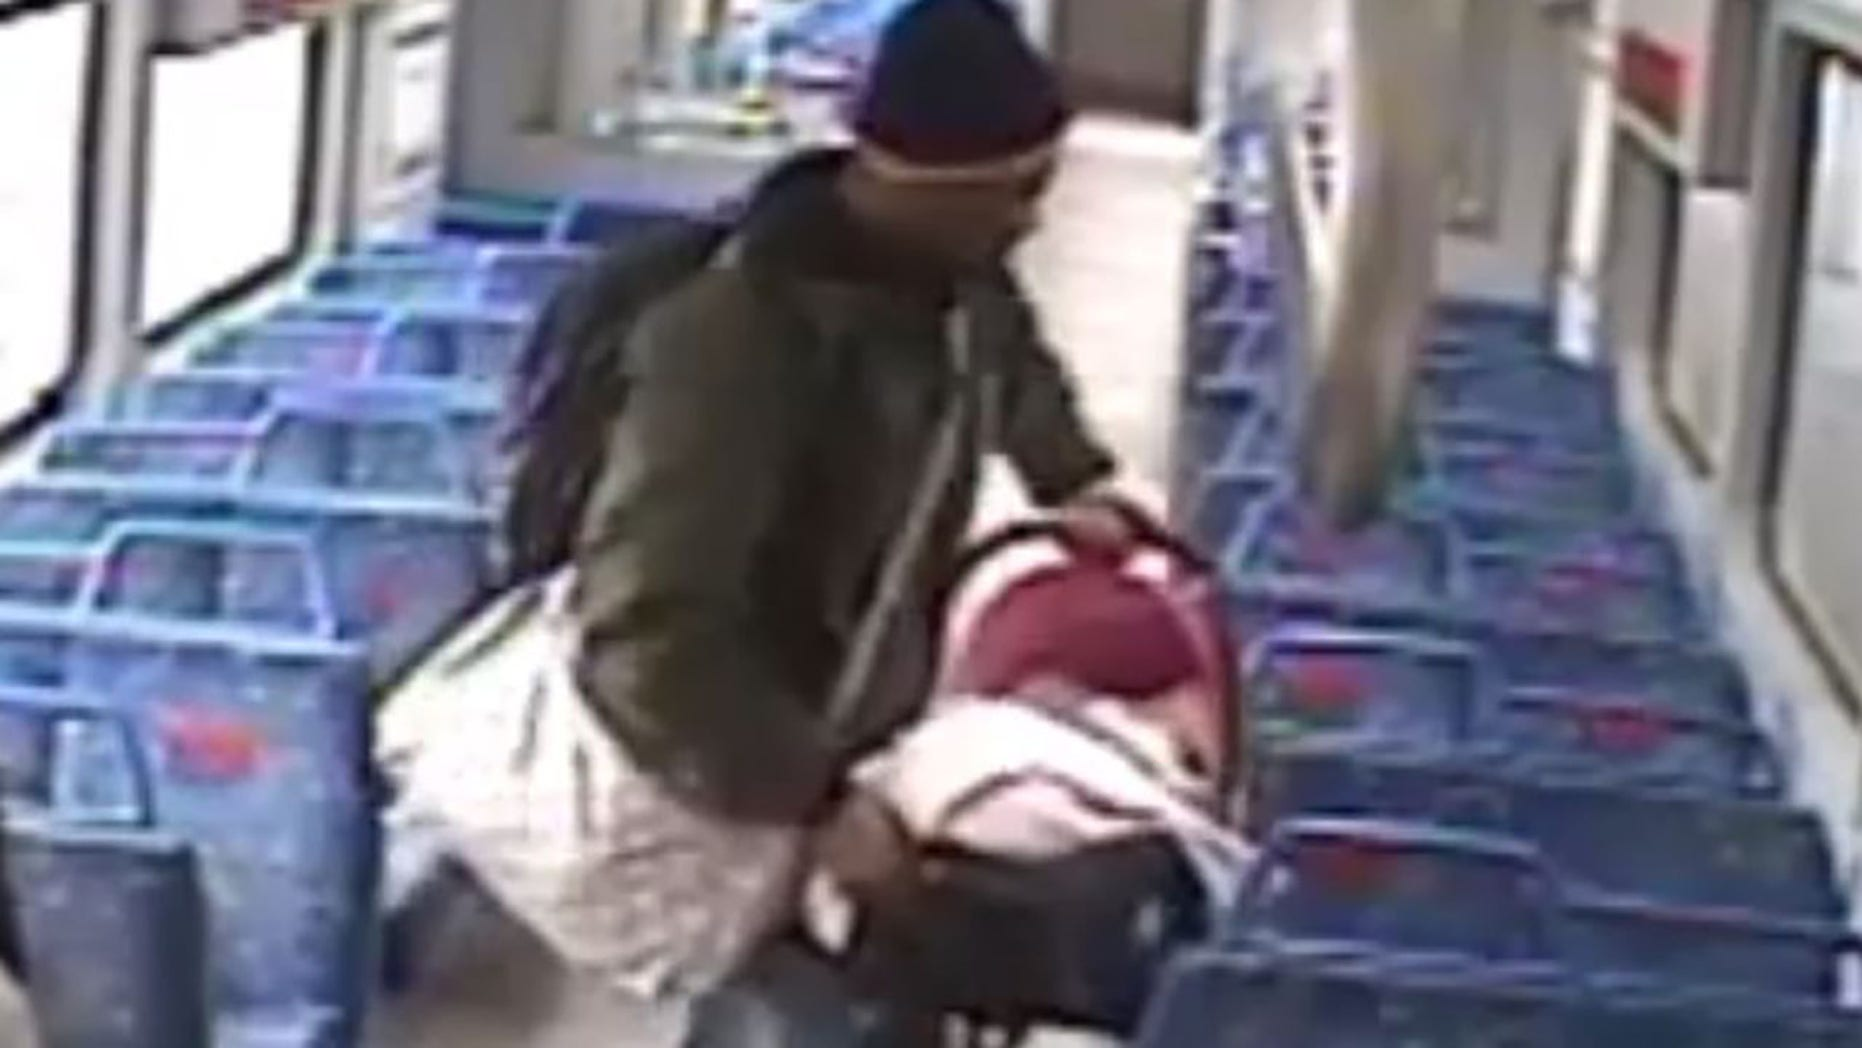 Man leaves baby on train to take smoke break